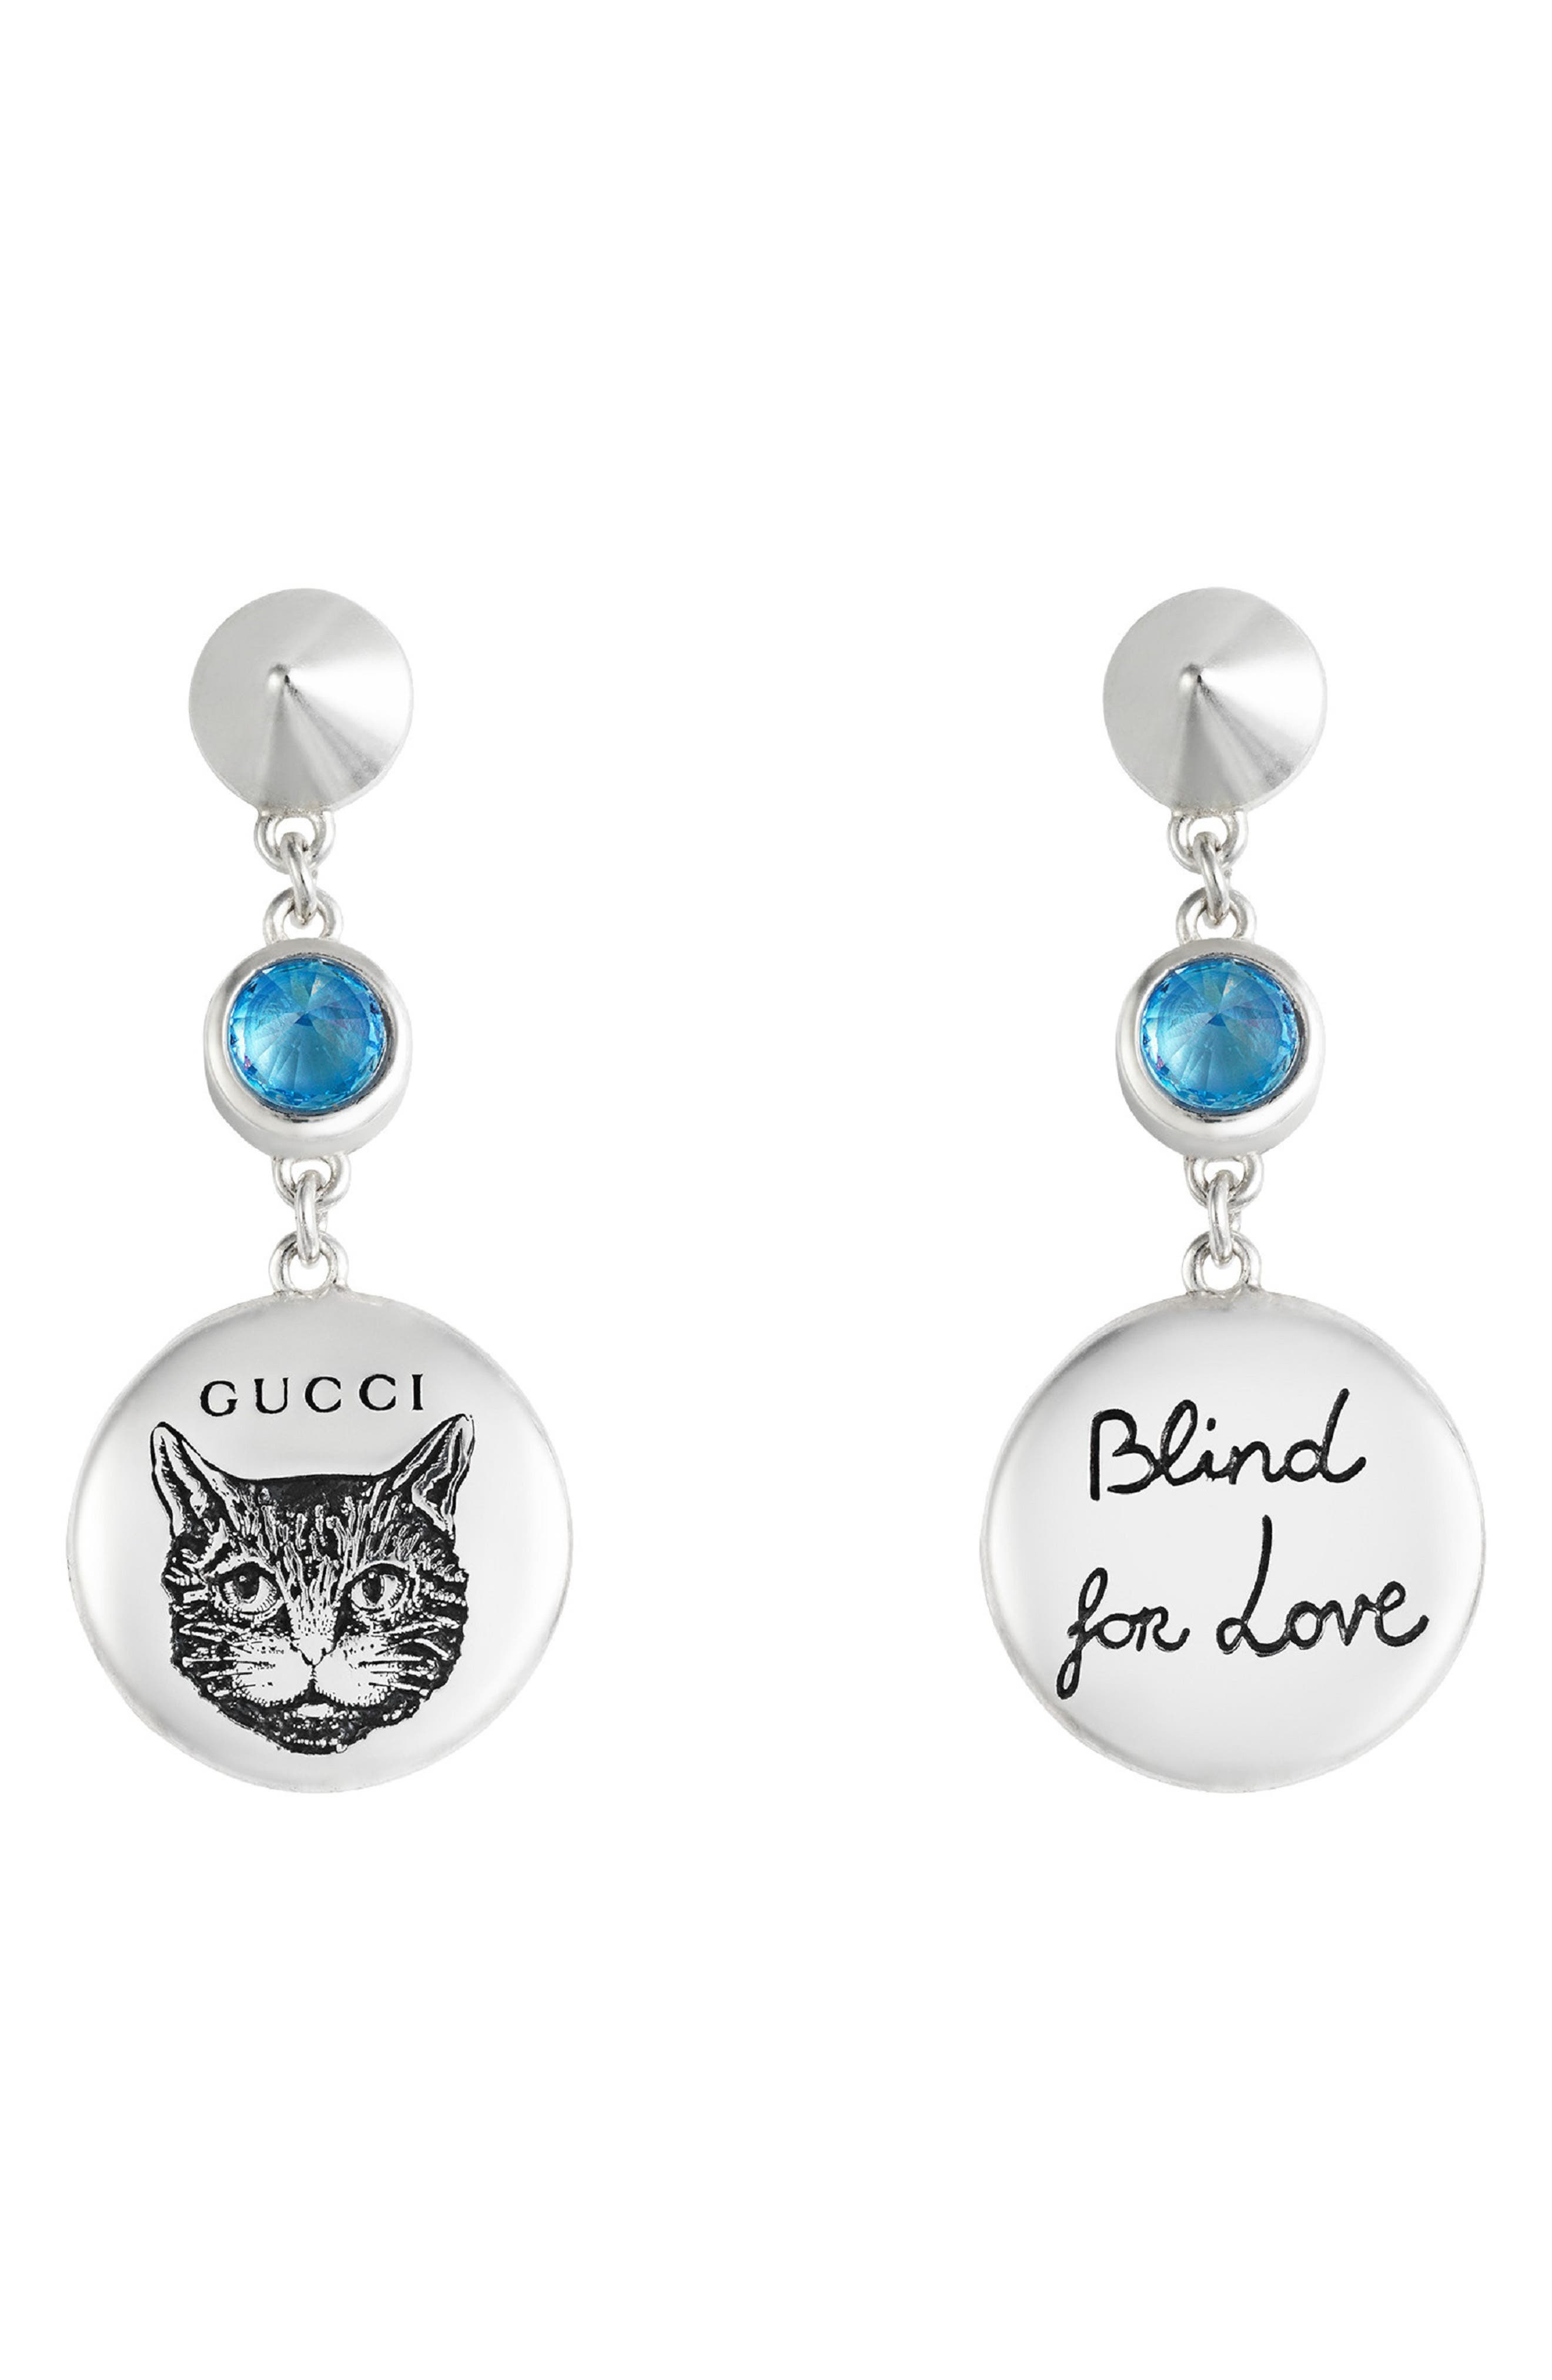 GG Blind for Love Mismatch Drop Earrings,                             Main thumbnail 1, color,                             STERLING SILVER/ BLUE ZIRCONIA